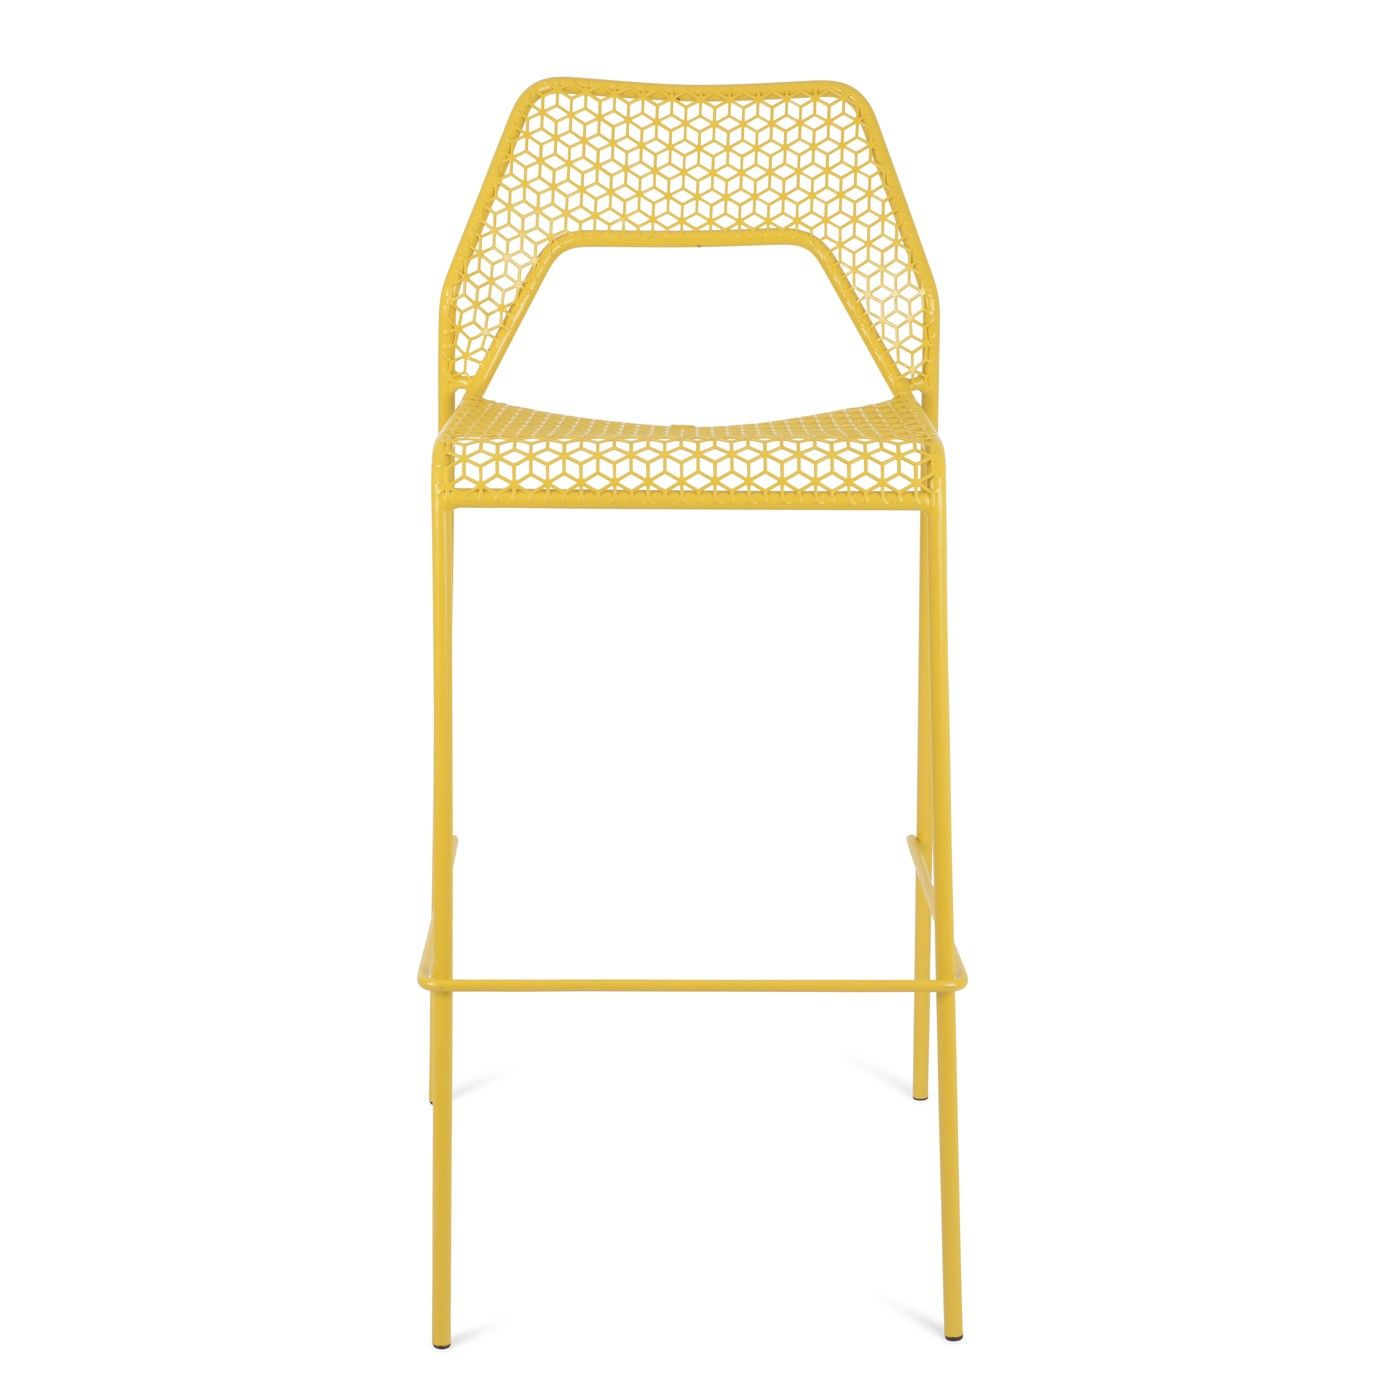 Hot Mesh Bar Stool | Kitchen stools | Pinterest